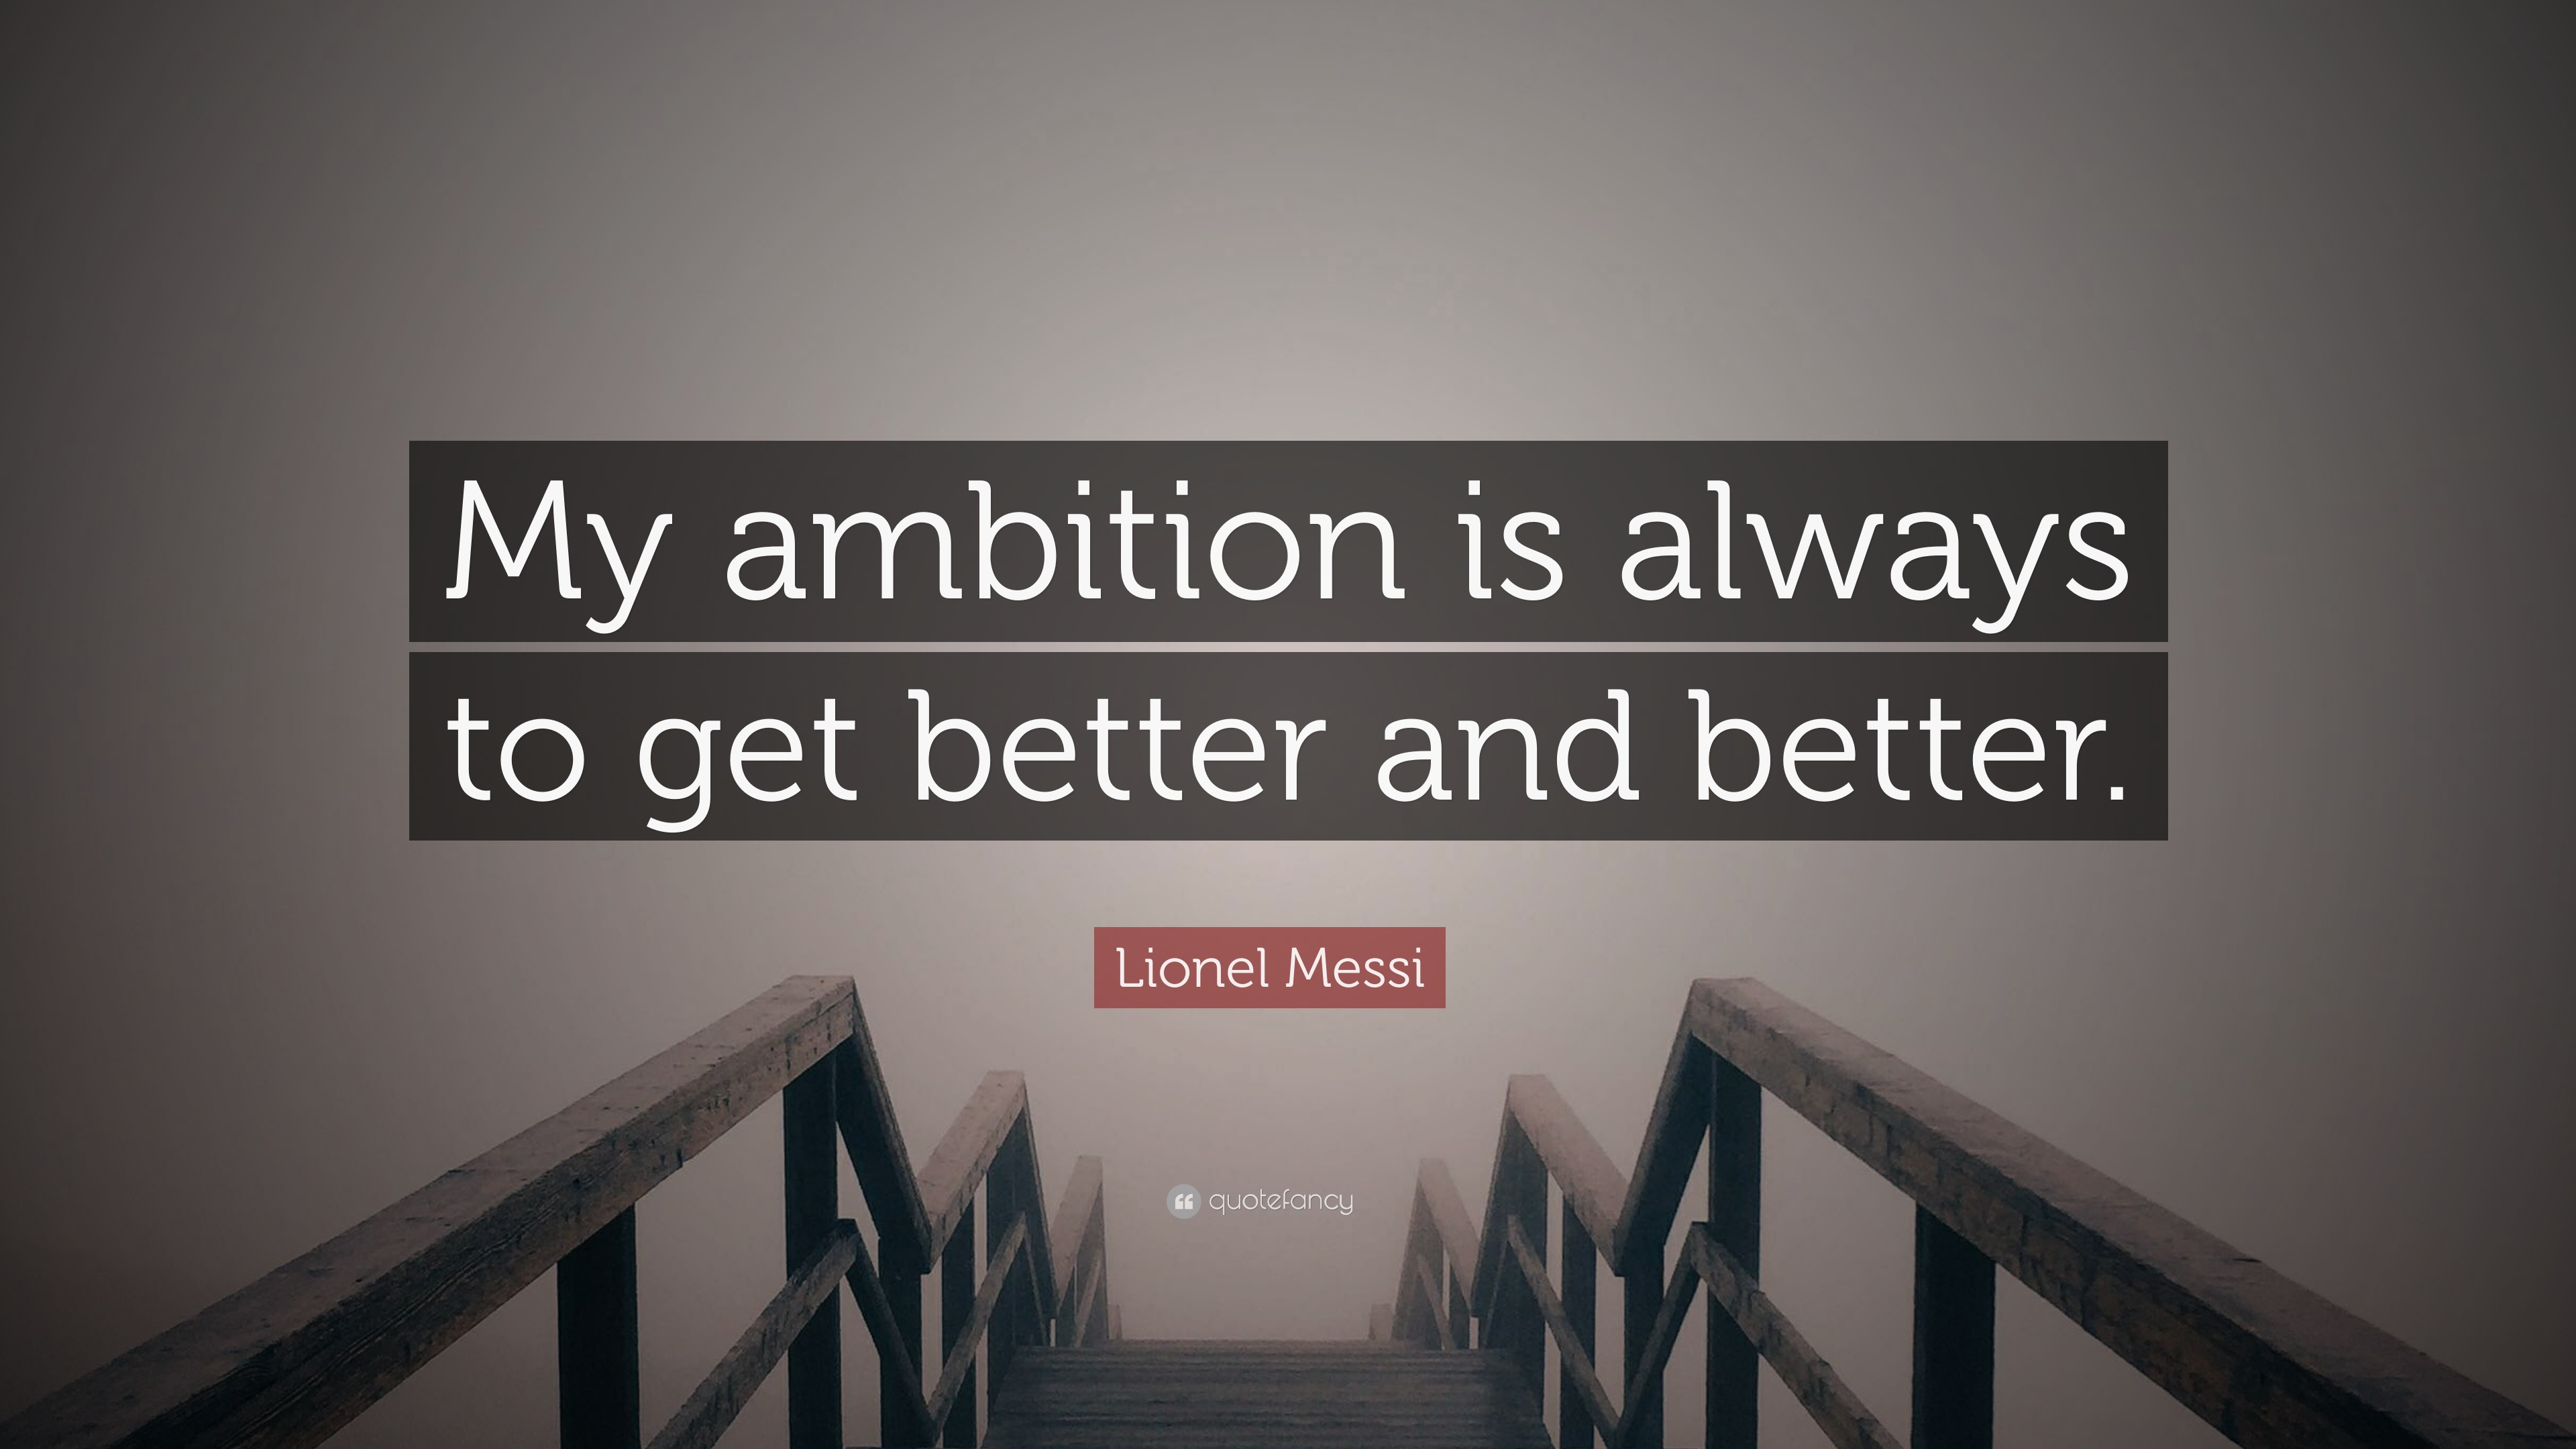 Charmant Lionel Messi Quote: U201cMy Ambition Is Always To Get Better And Better.u201d